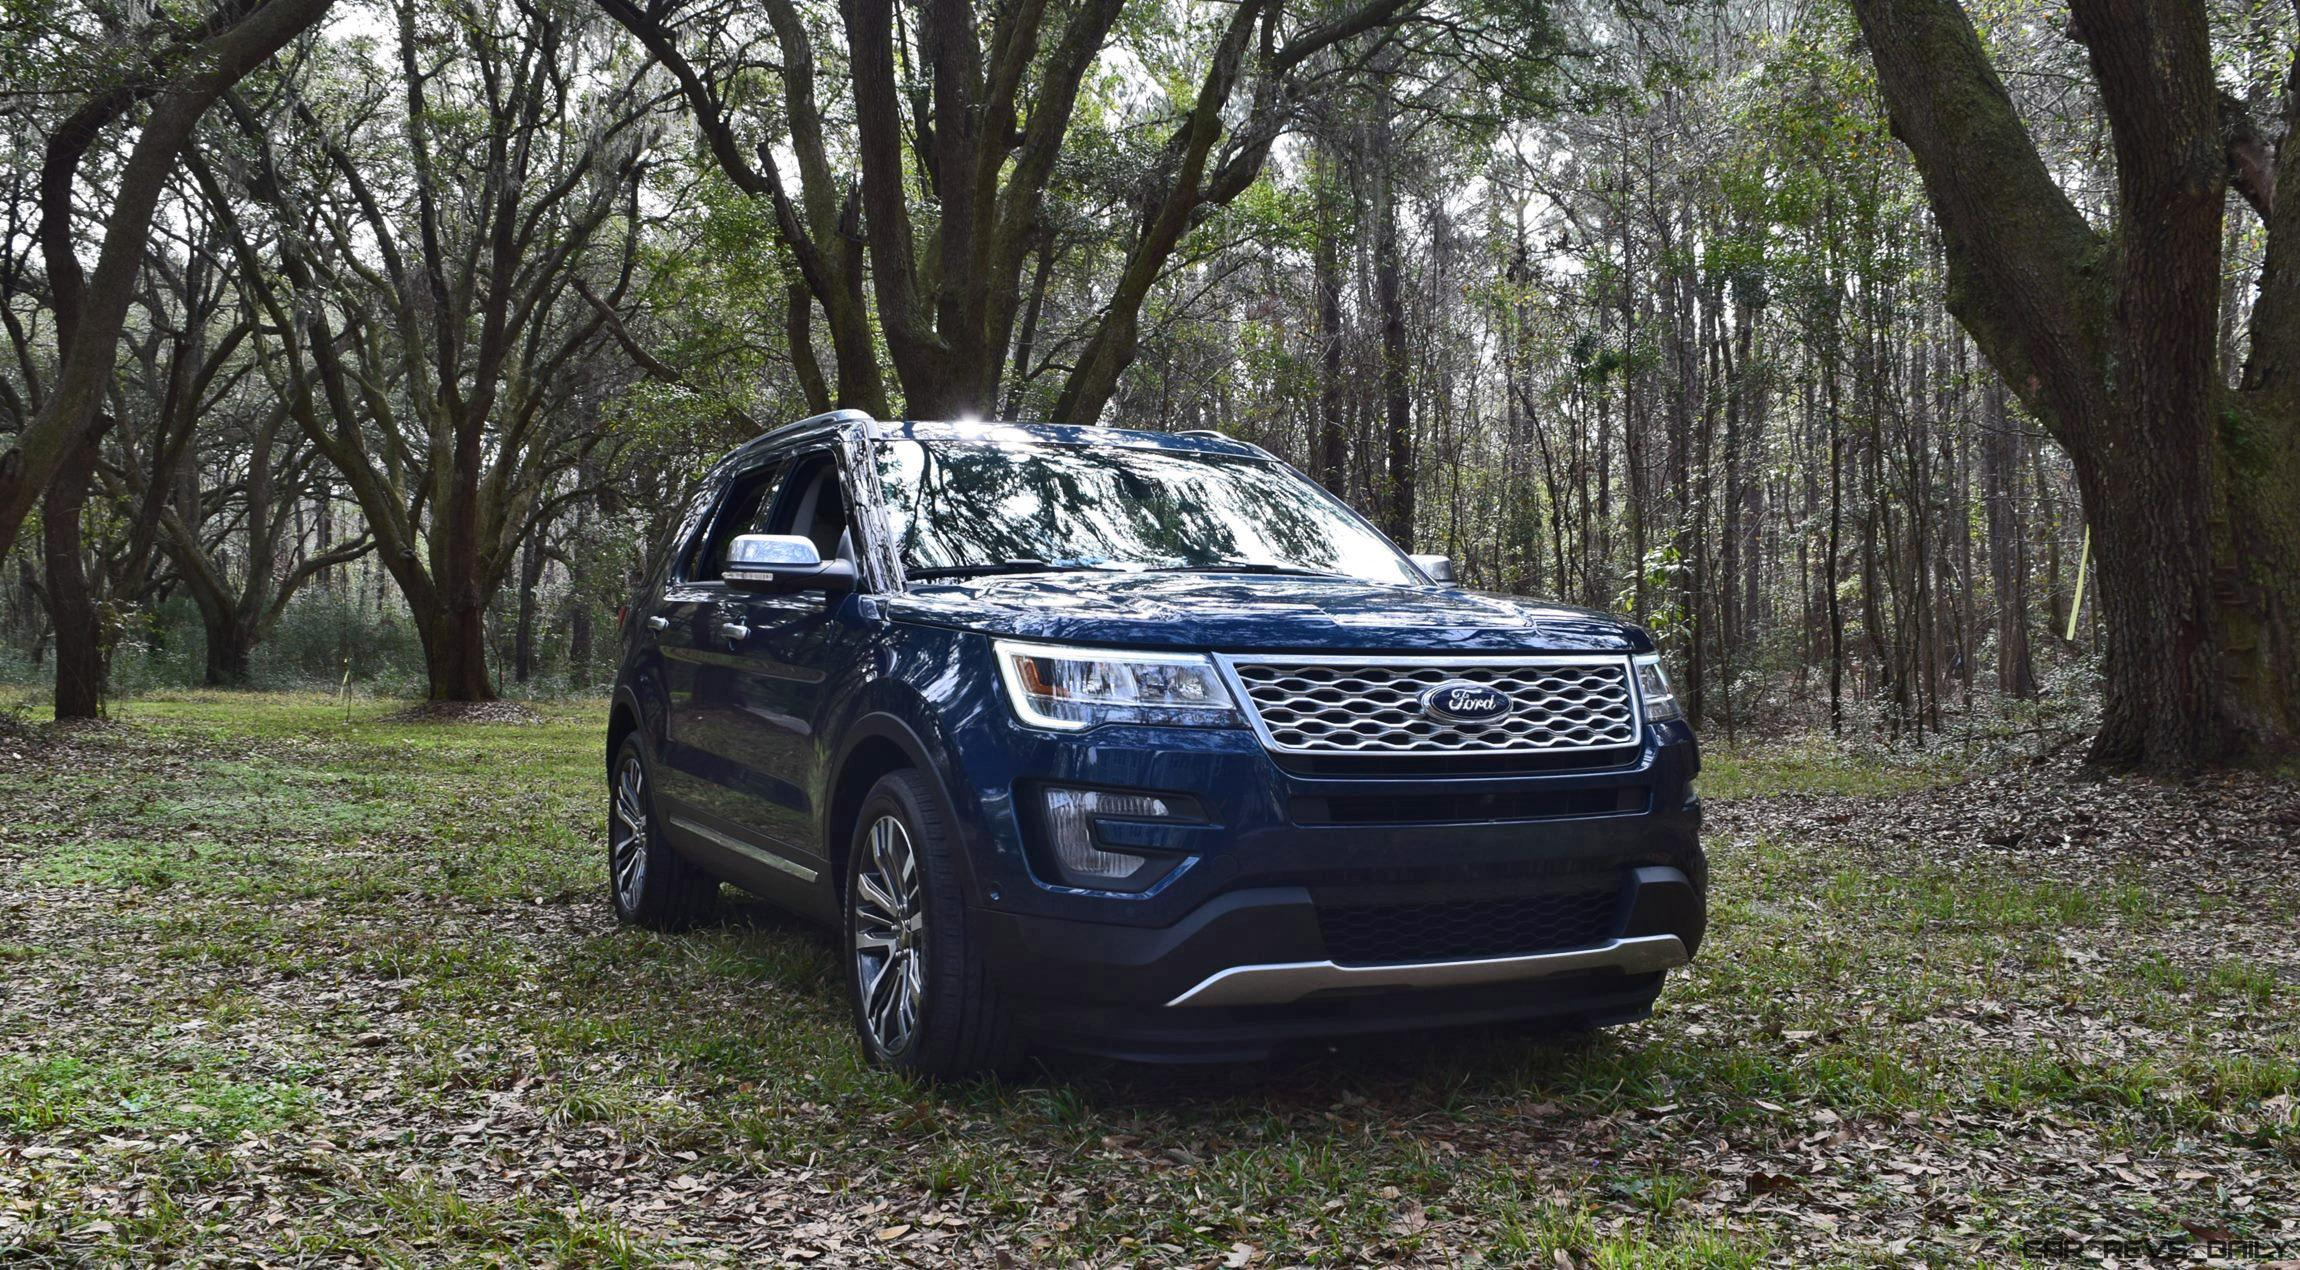 drive first crossover photo car explorer kitchen sink test review reviews price hr platinum ford article gallery